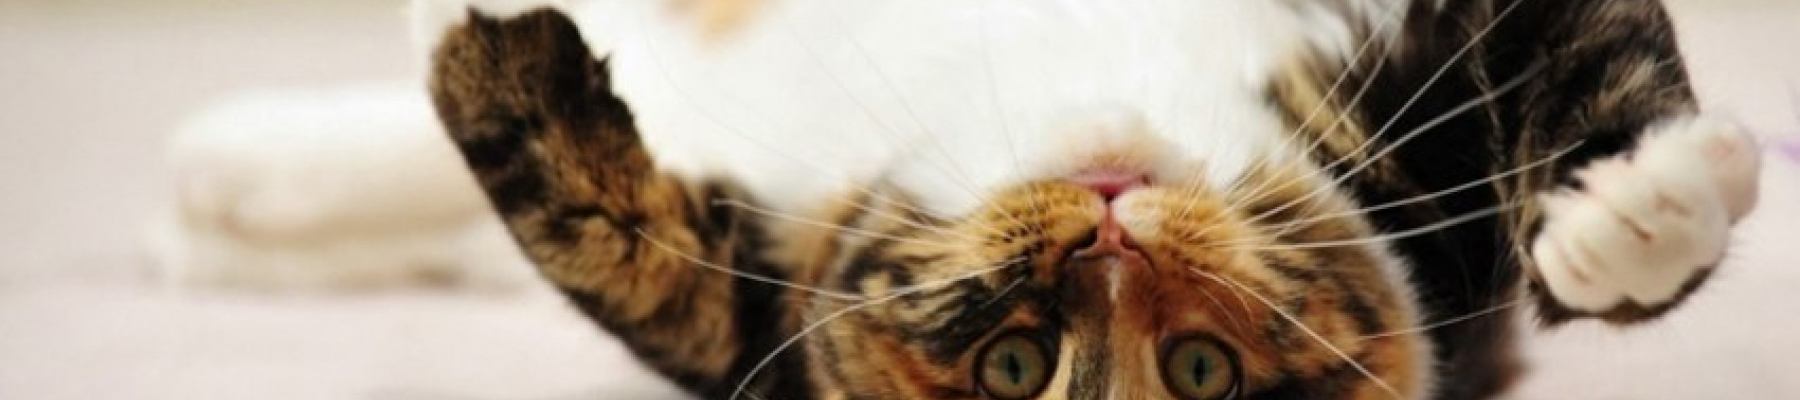 upside-down-cat-facebook-cover-timeline-banner-for-fb.jpg